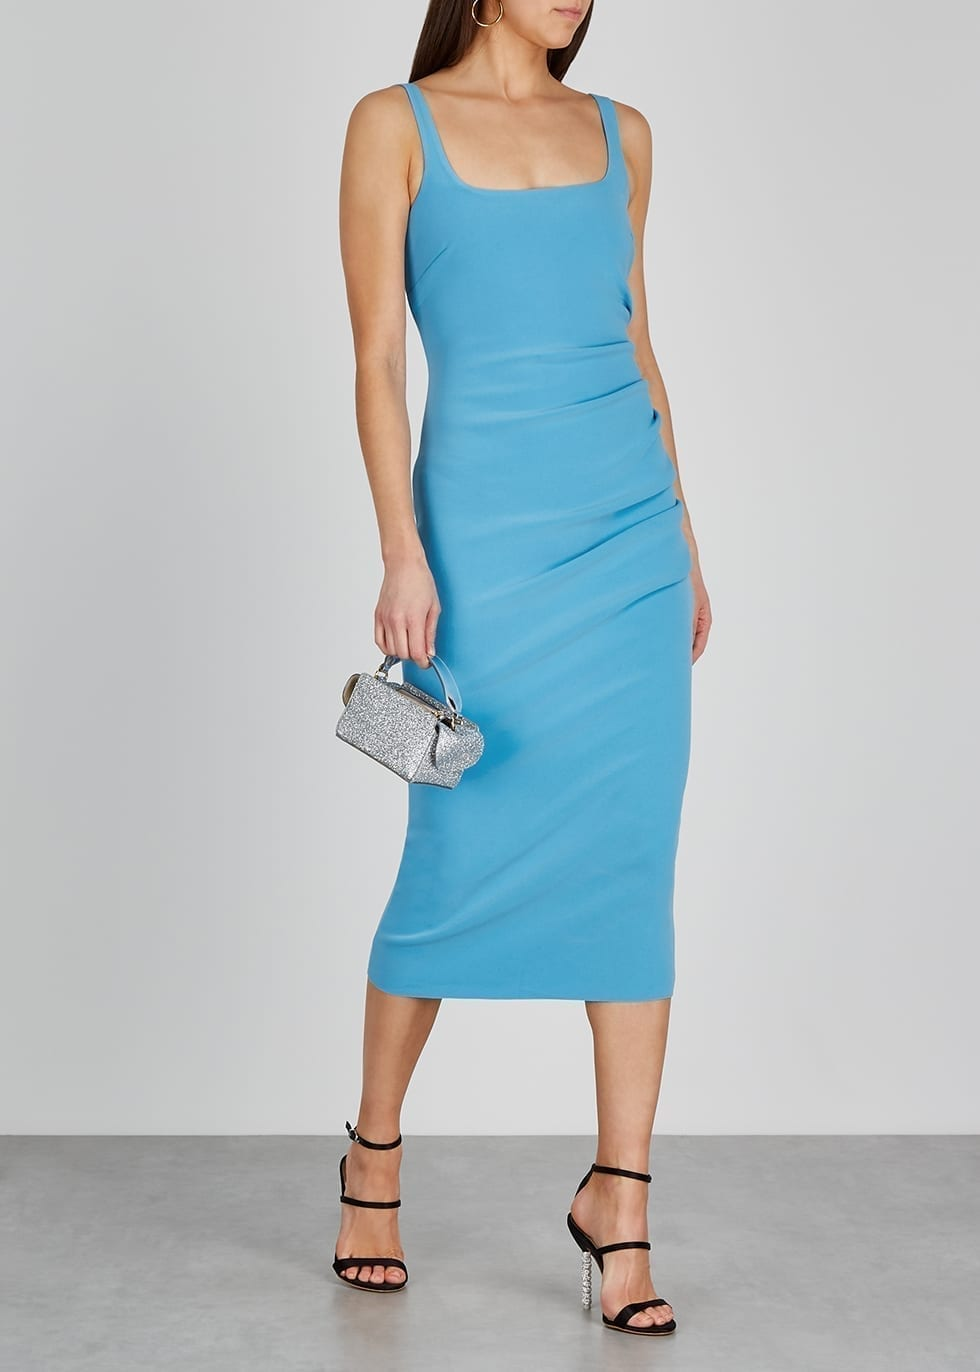 BEC & BRIDGE Paloma Blue Midi Dress